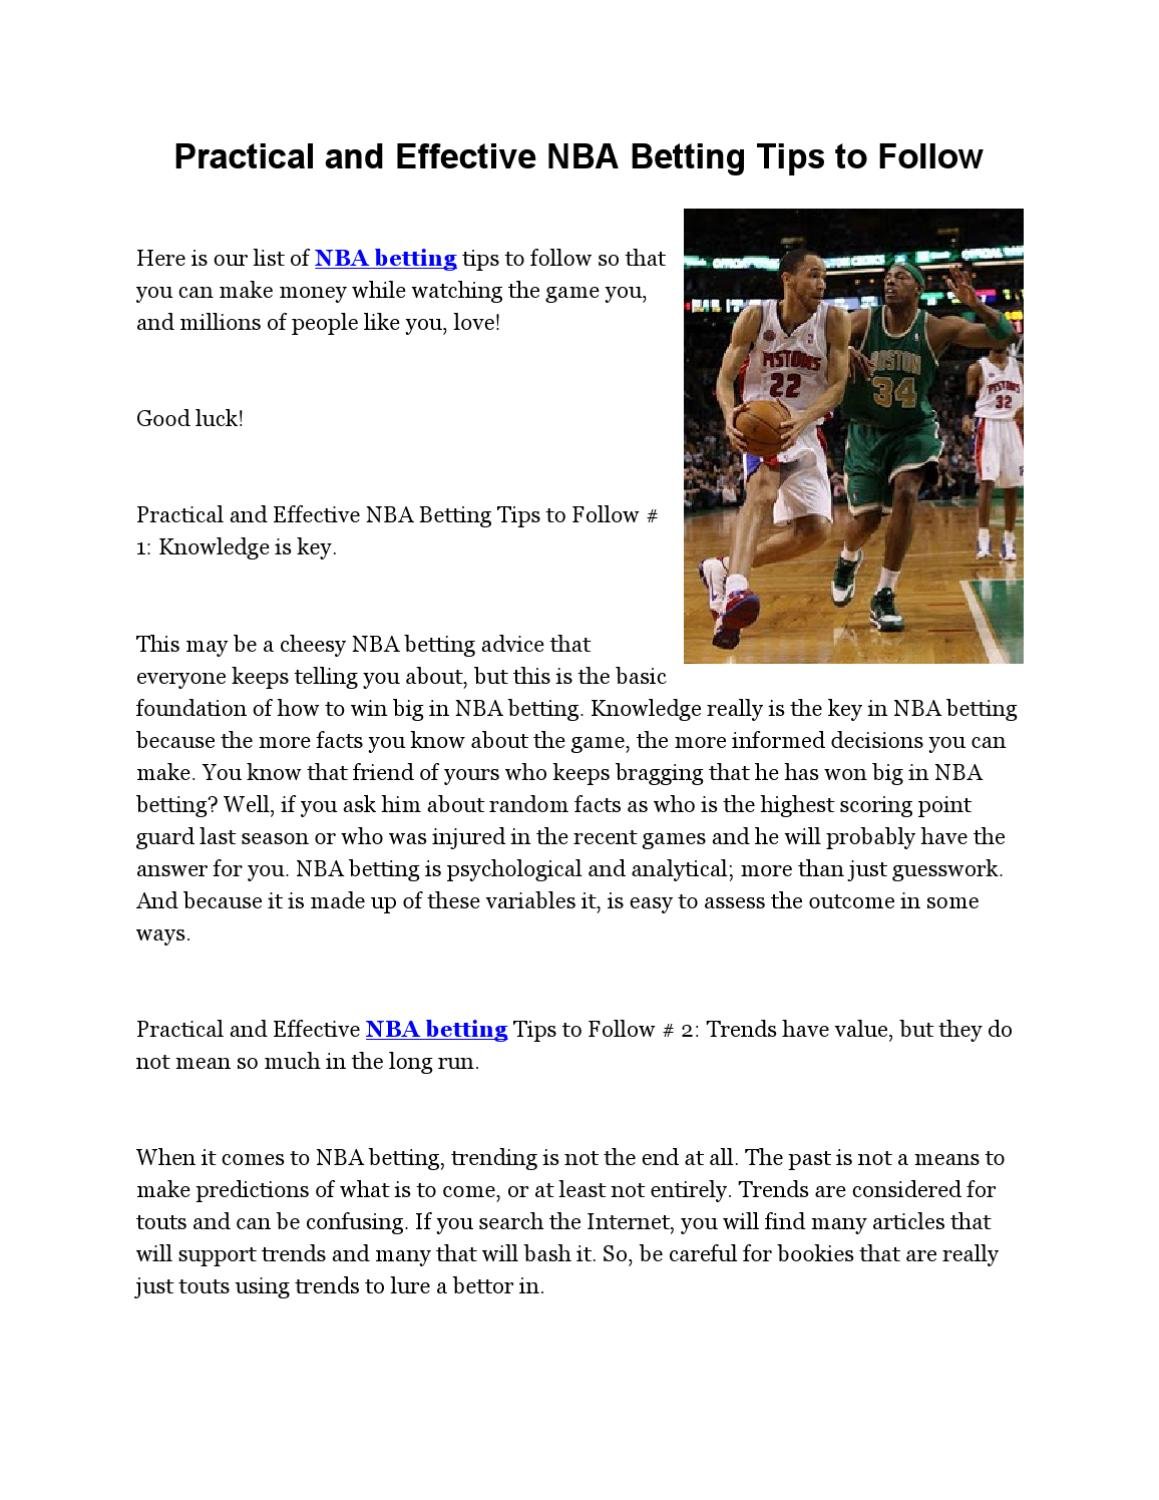 Practical and Effective NBA Betting Tips to Follow by Jerry